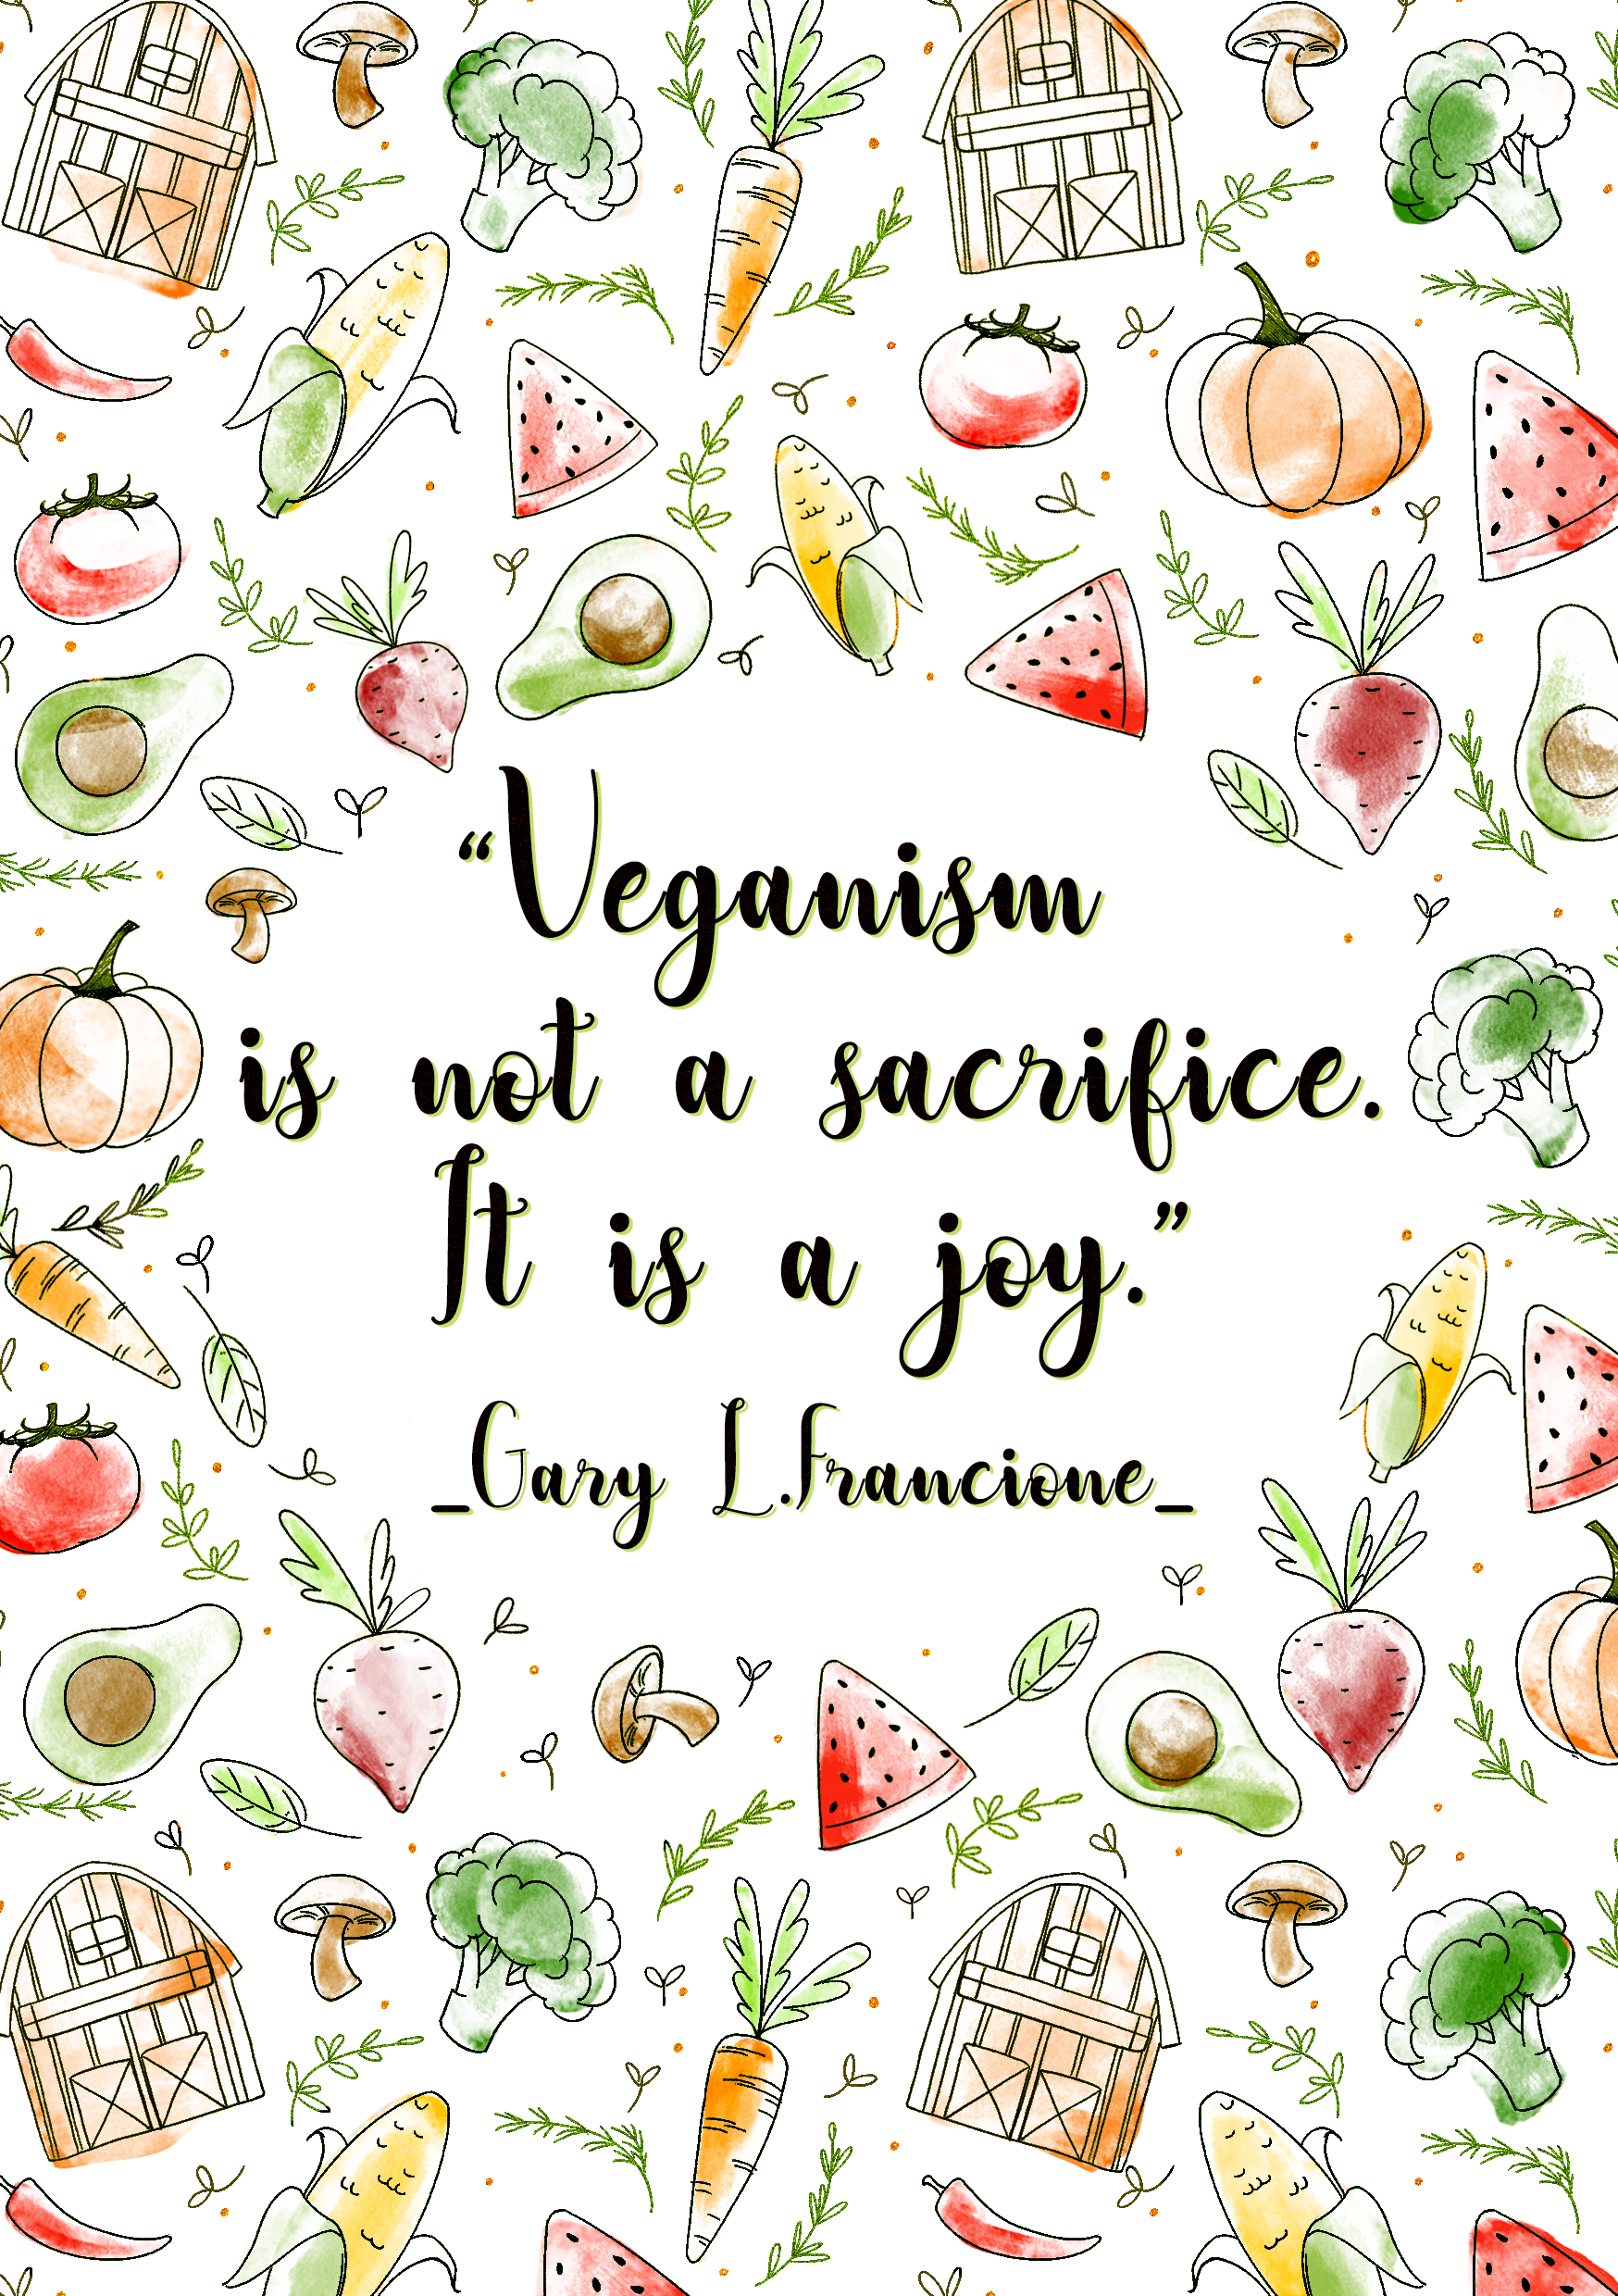 Design a cover for a yearly vegan journal to appeal to vegans